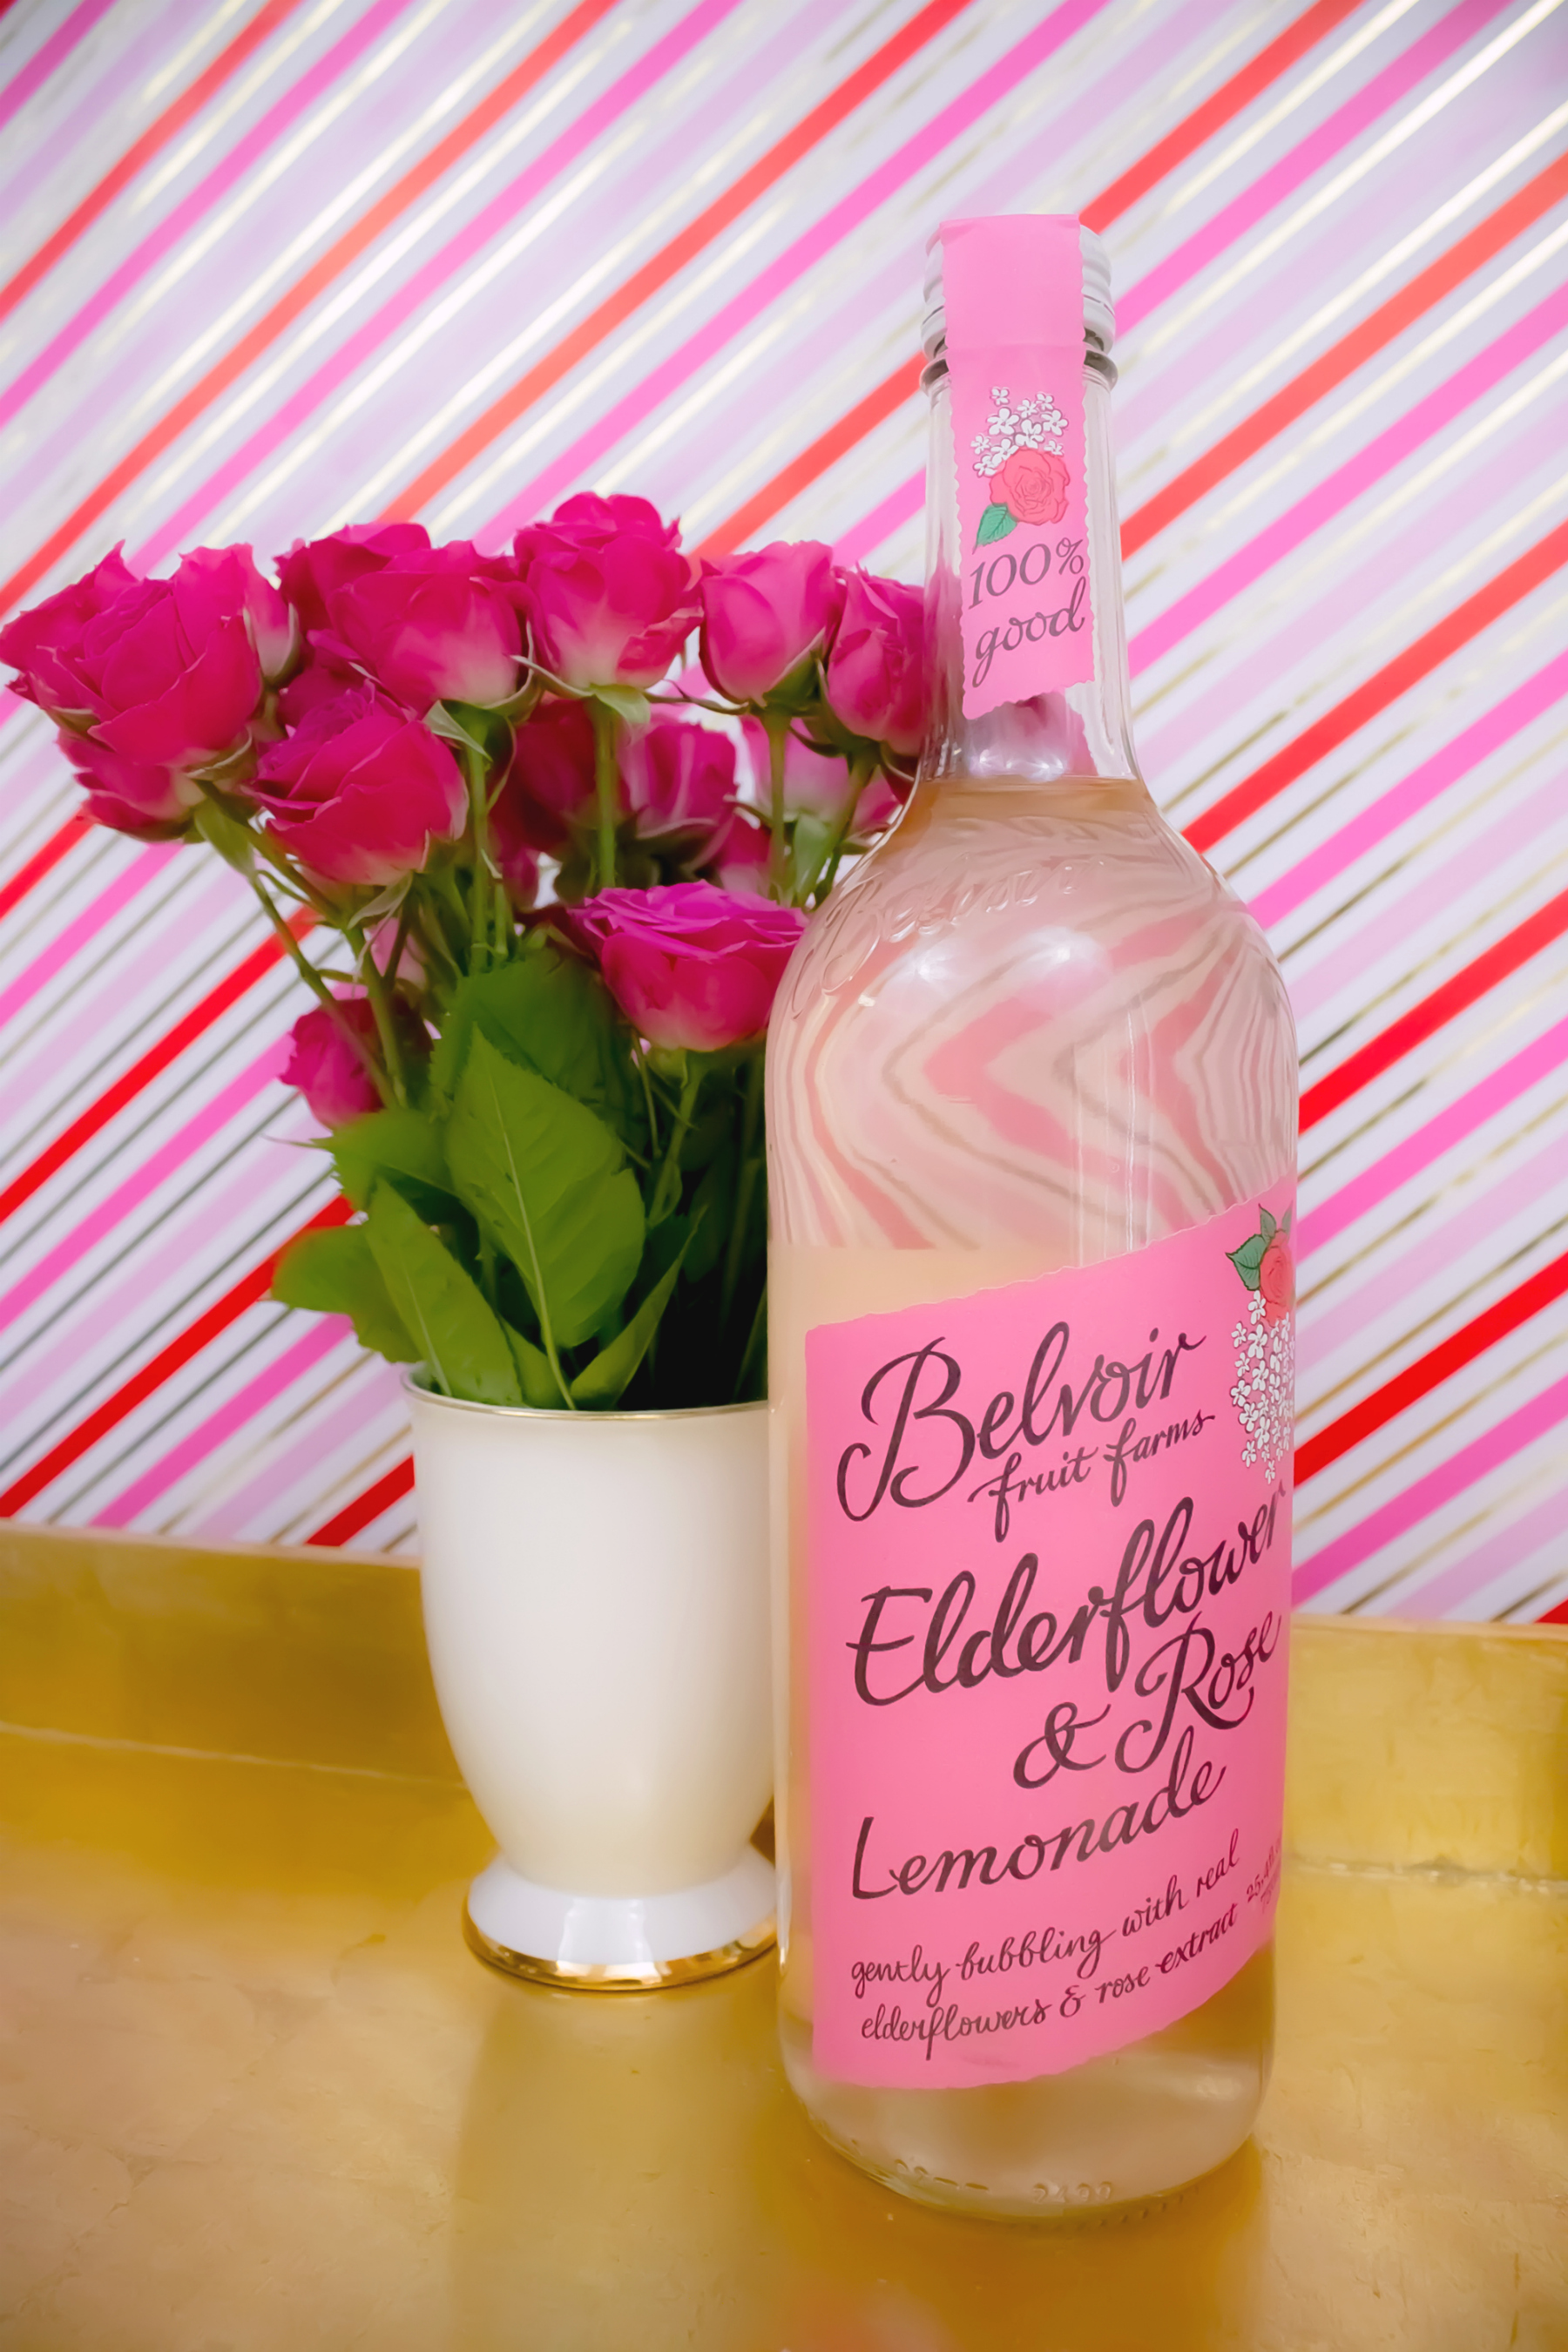 Belvoir fruit farms elderflower and rose lemonade valentines gift guide